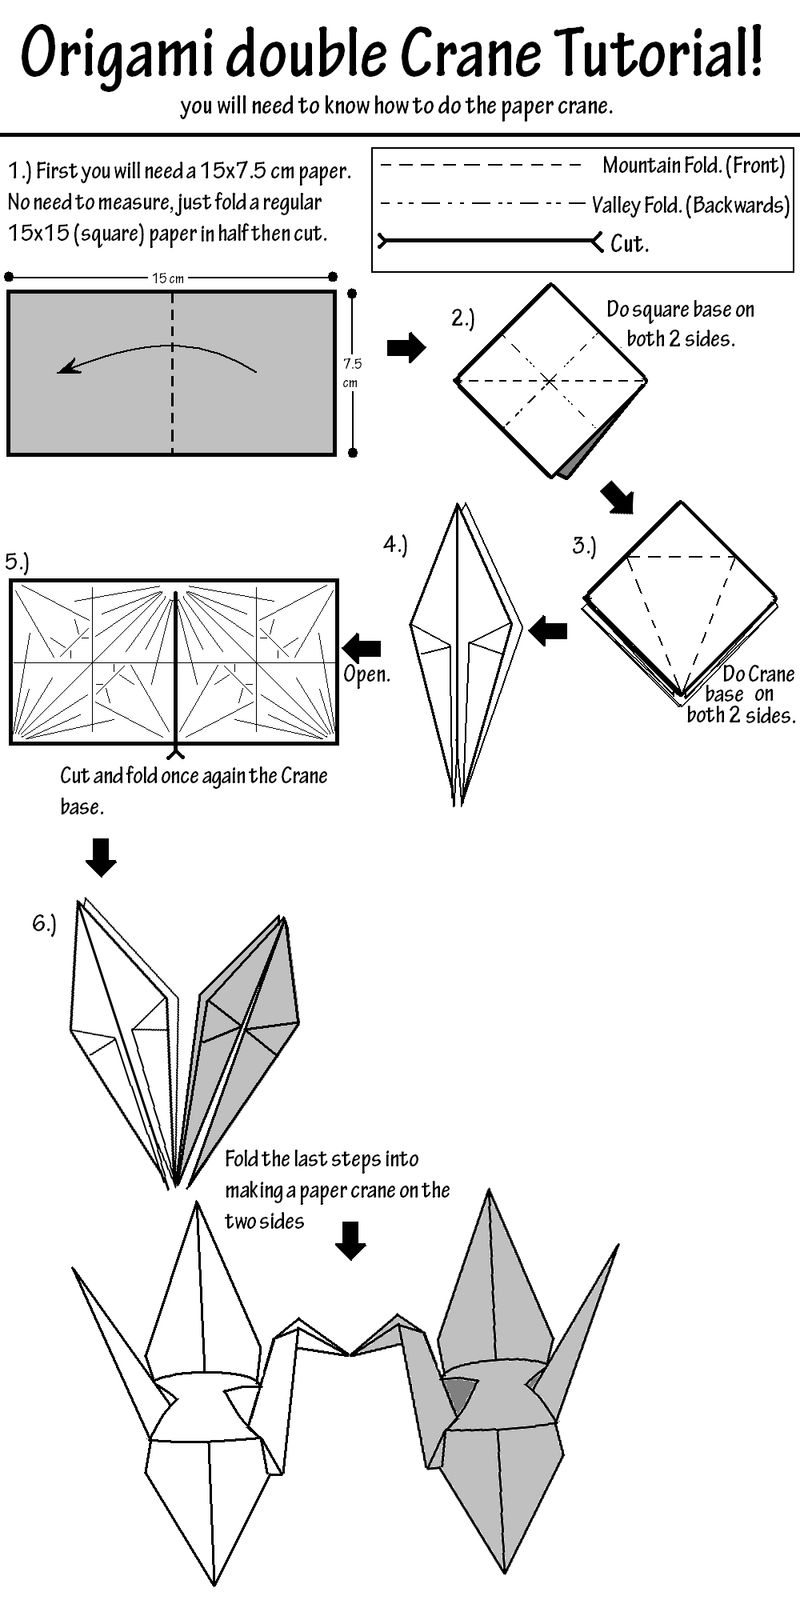 How to Fold a Paper Crane (with Pictures) - wikiHow | 1600x800